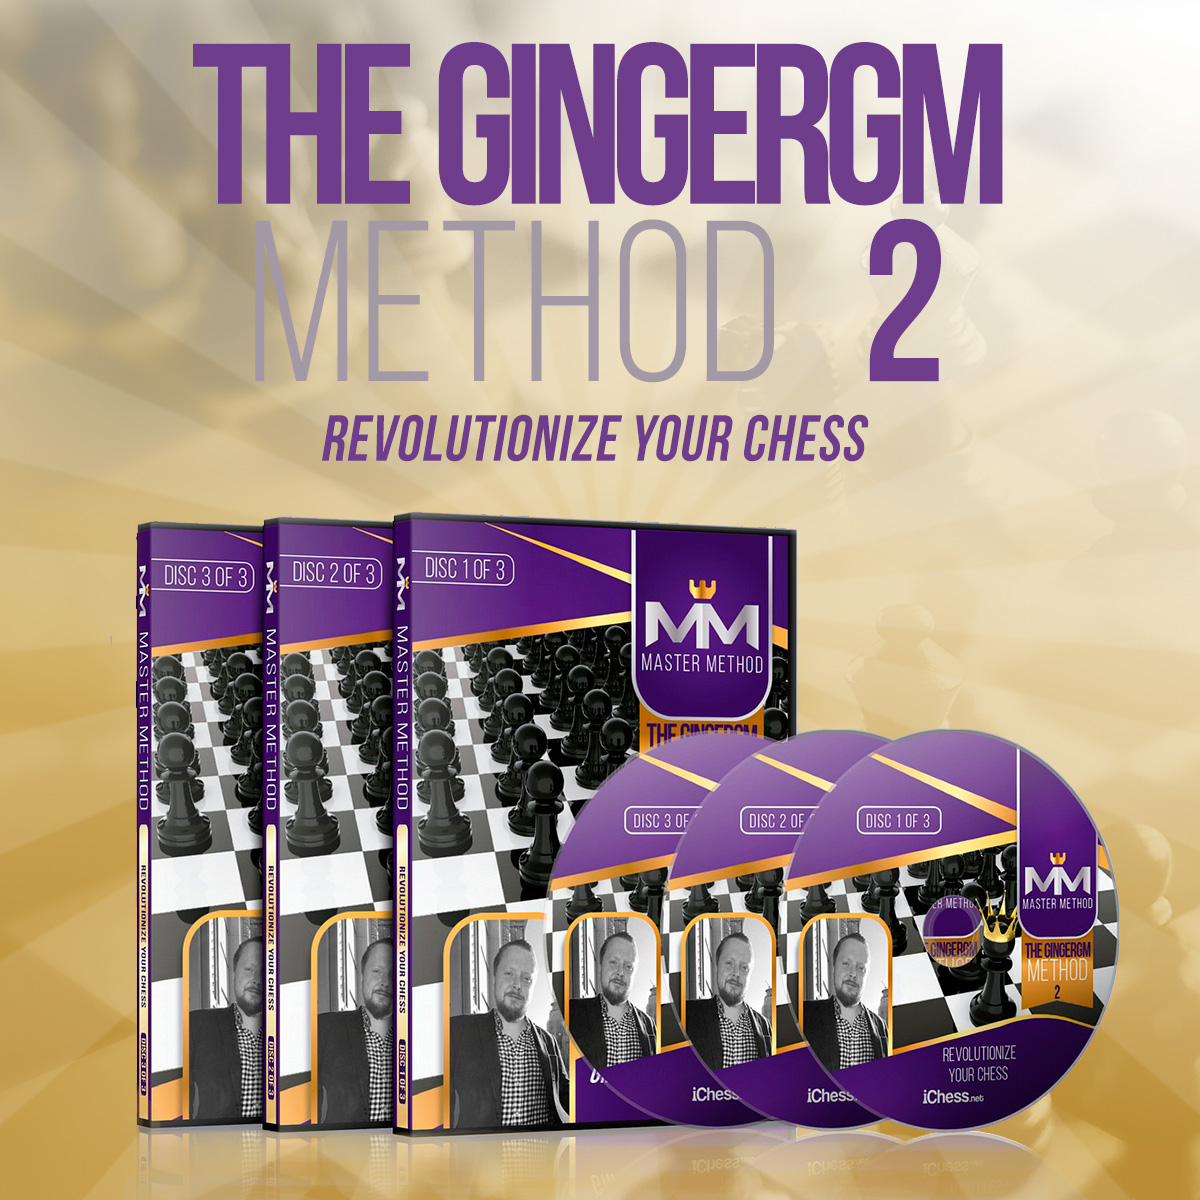 Revolutionize Your Chess (The Ginger GM Method 2)